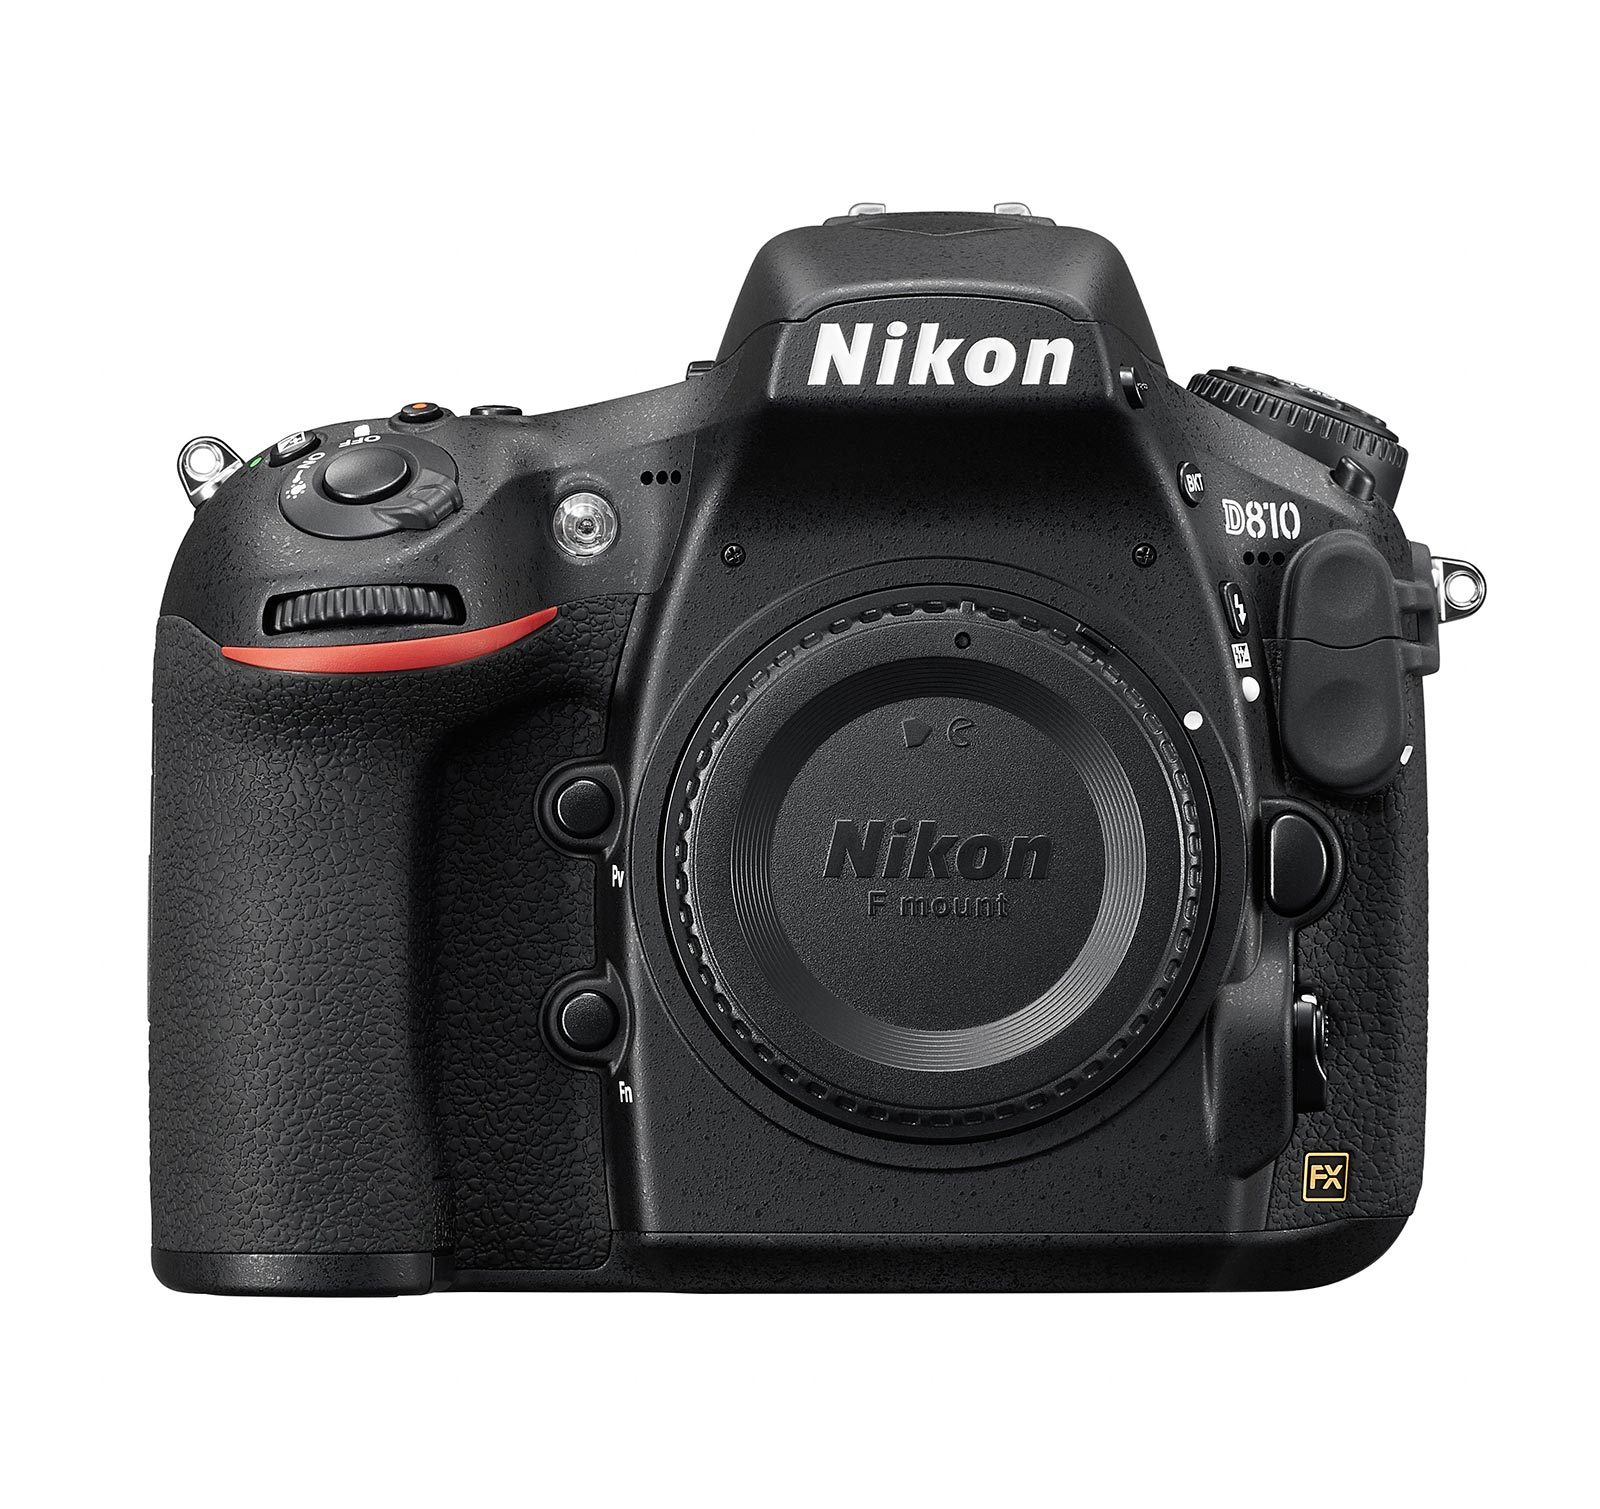 Nikon Black D810 FX-format Digital DSLR Camera with 36.3 Megapixels (Body Only) by Nikon